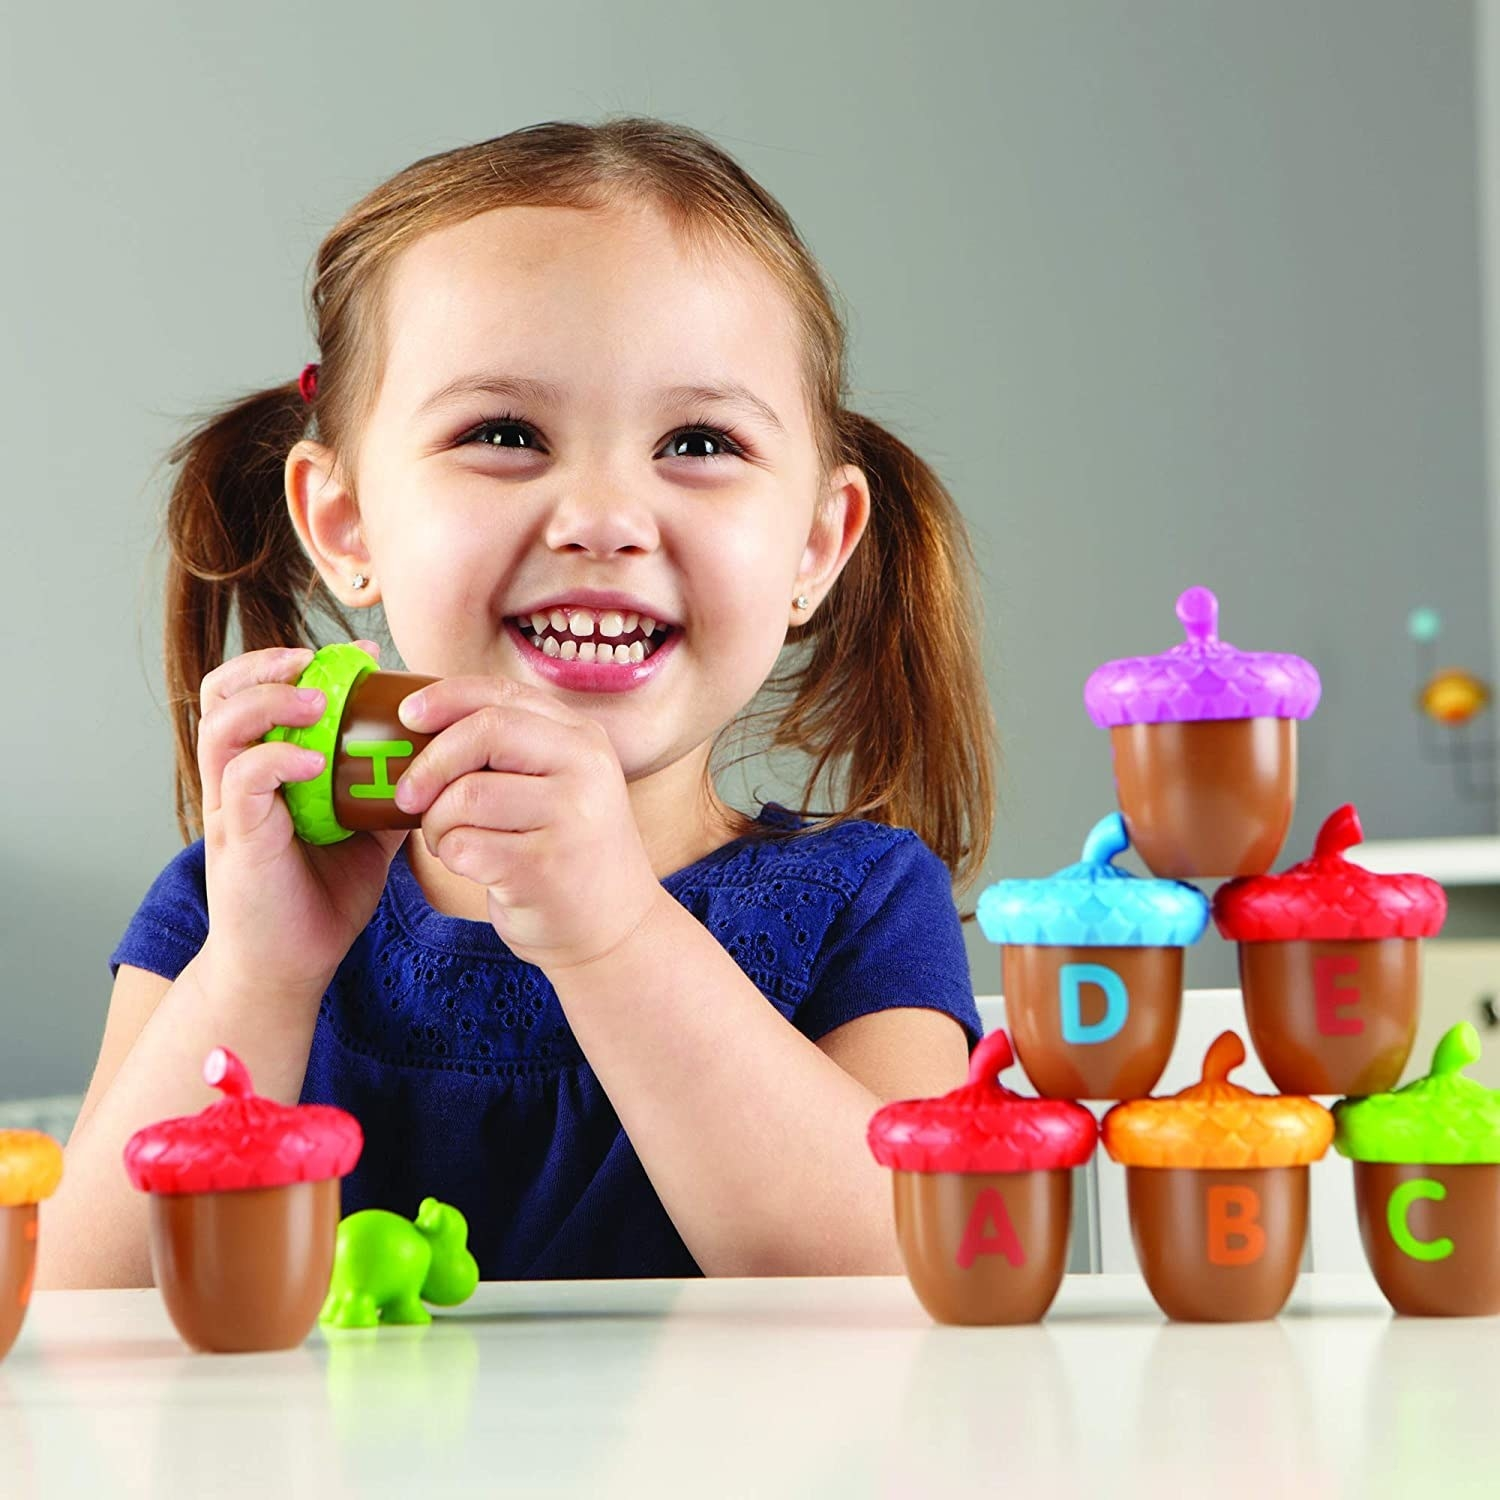 Child model with multi-colored toy acorns